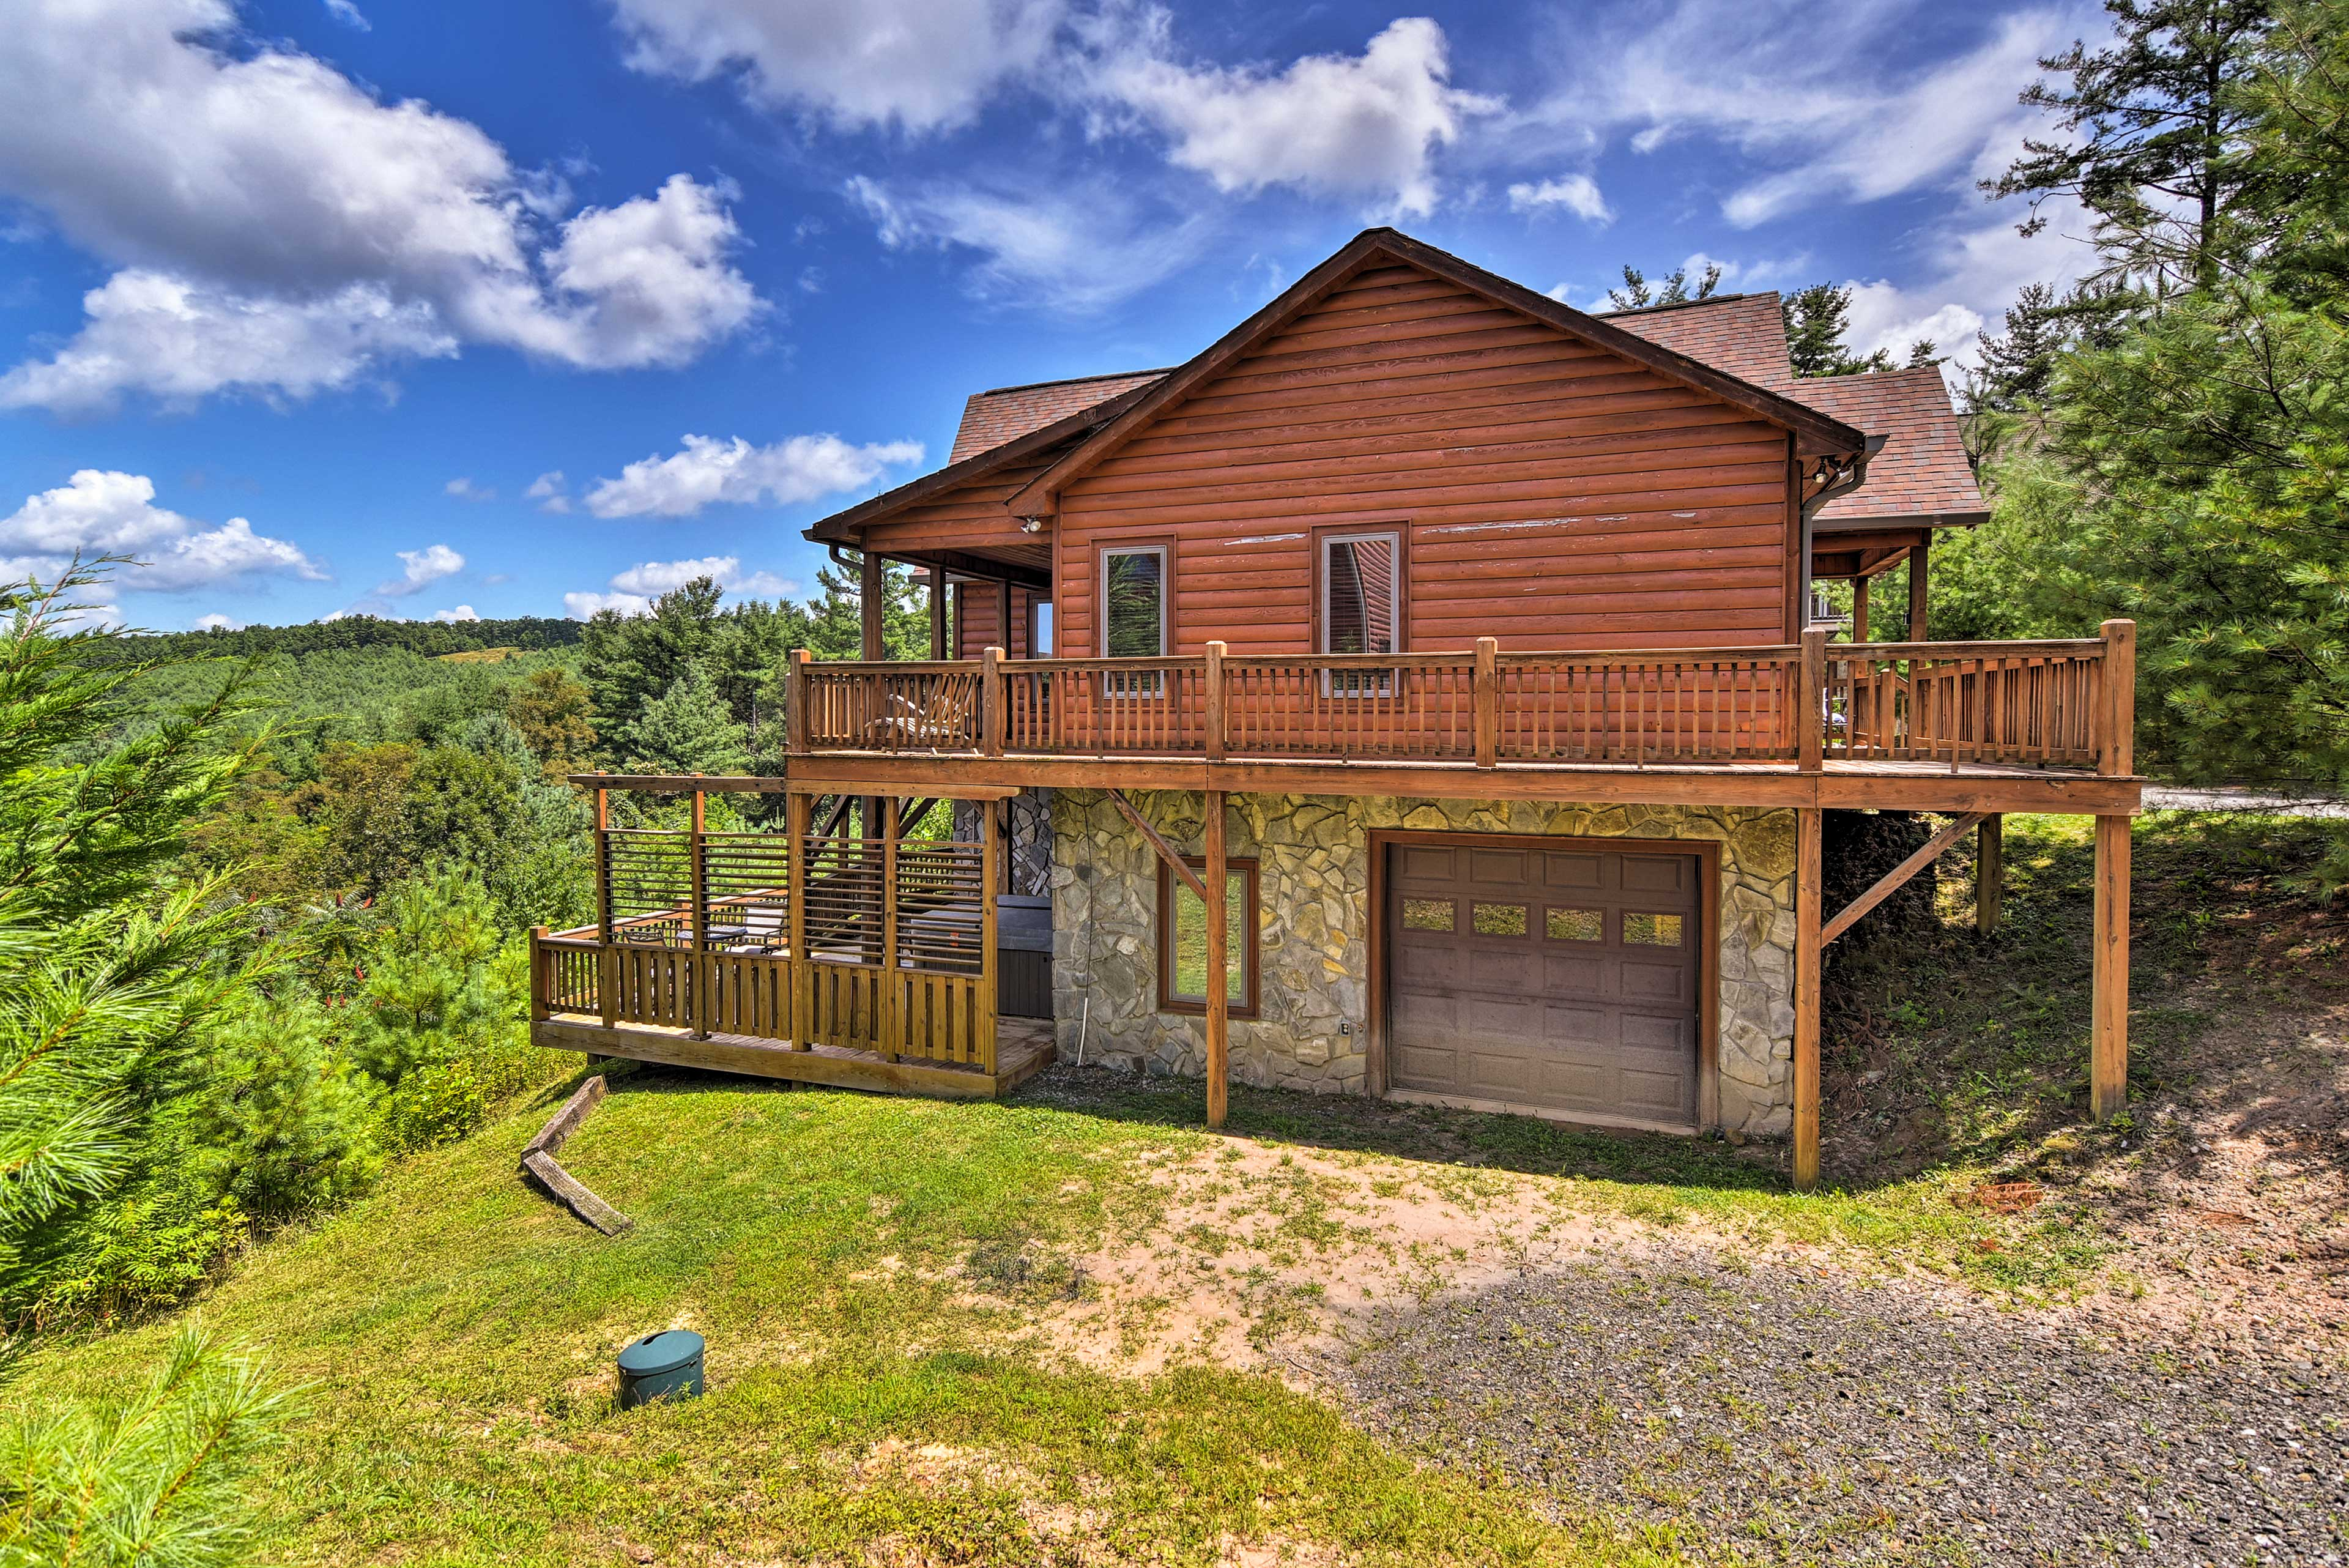 Escape to the mountains of North Carolina to stay at this vacation rental cabin.